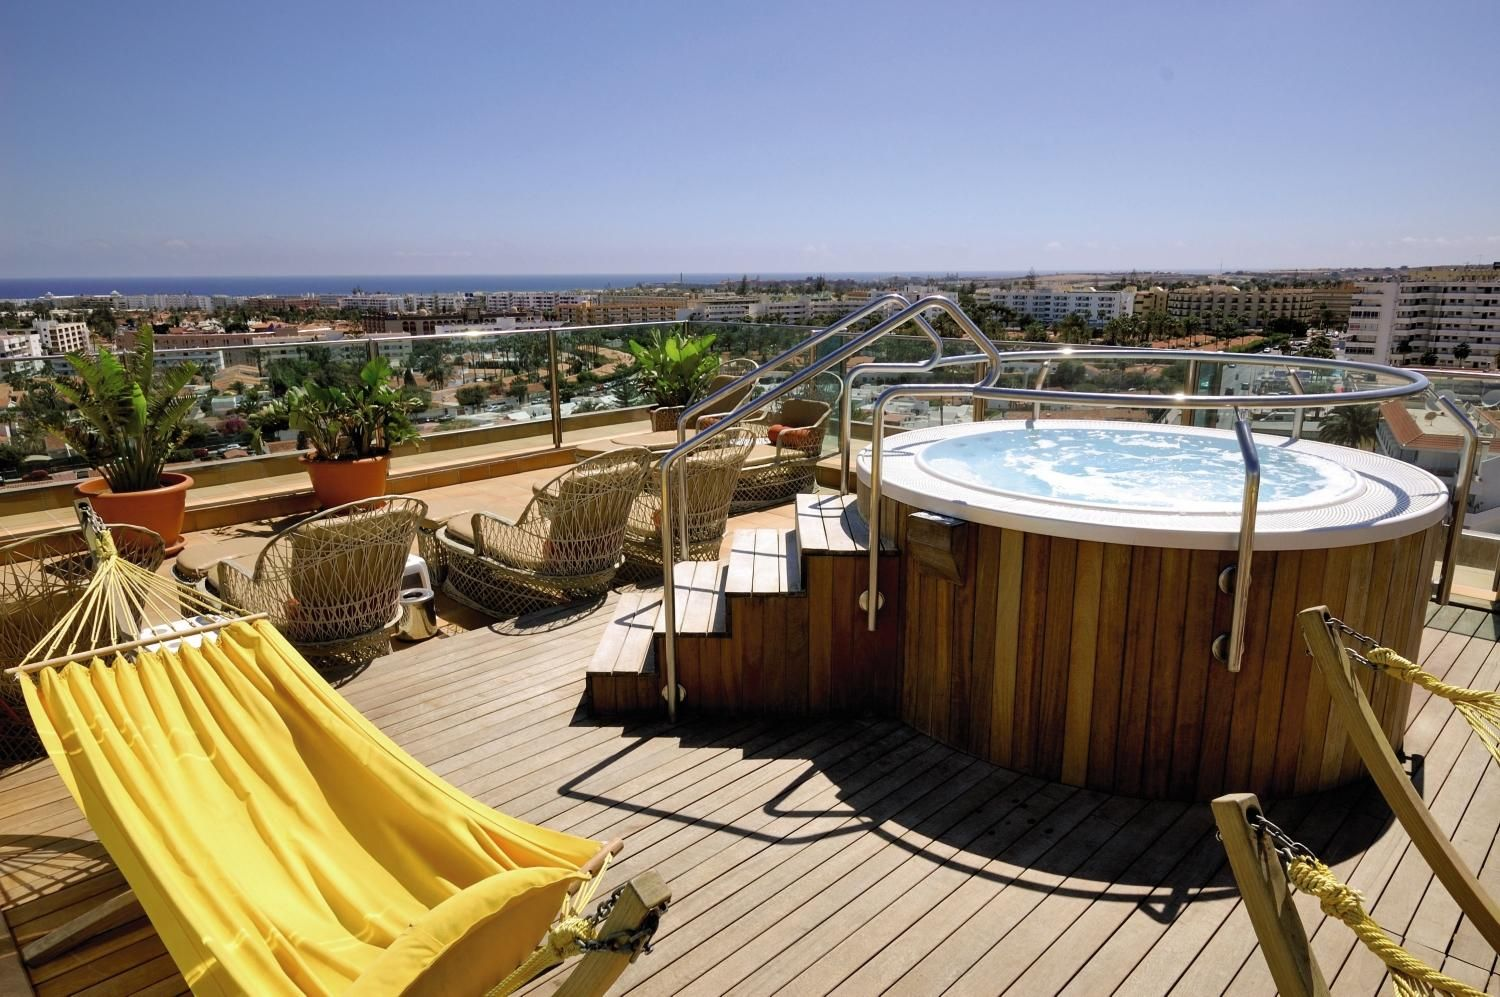 Hotel Bull Eugenia Victoria & Spa - - 3* pas cher photo 1